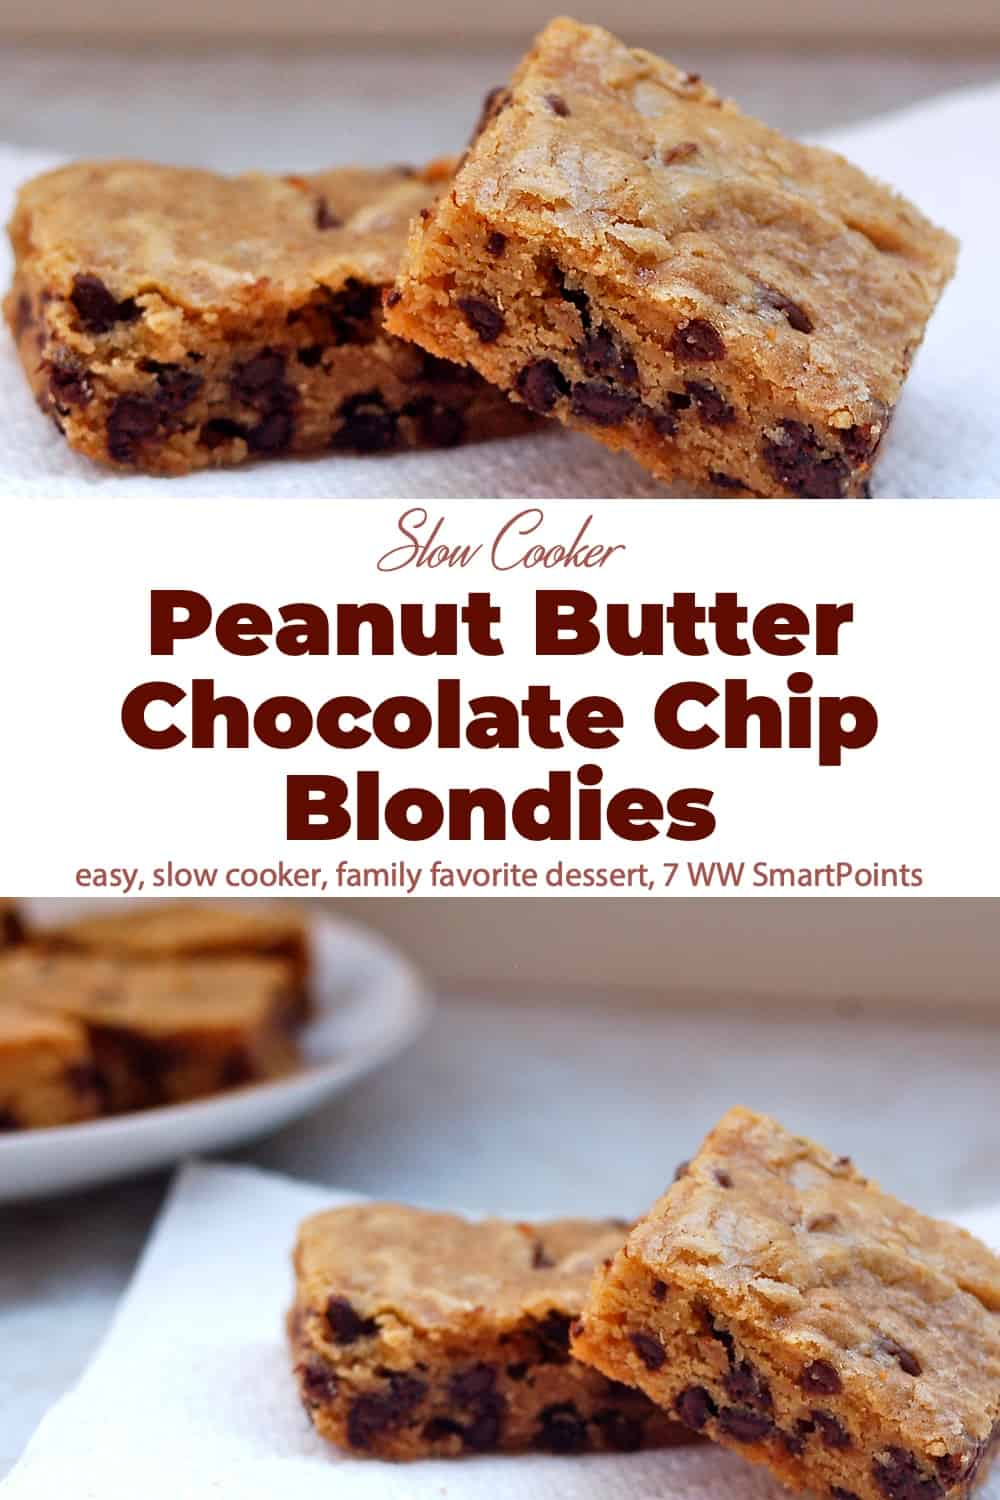 This makes a nice little batch of slow cooker peanut butter chocolate chip blondies in a 2- to 3-1/2-Quart slow cooker! #slowcookerpeanutbutterchocolatechipblondies #peanutbutterchocolatechipblondies #chocolatechipblondies #blondies #brownies #slowcooker #crockpot